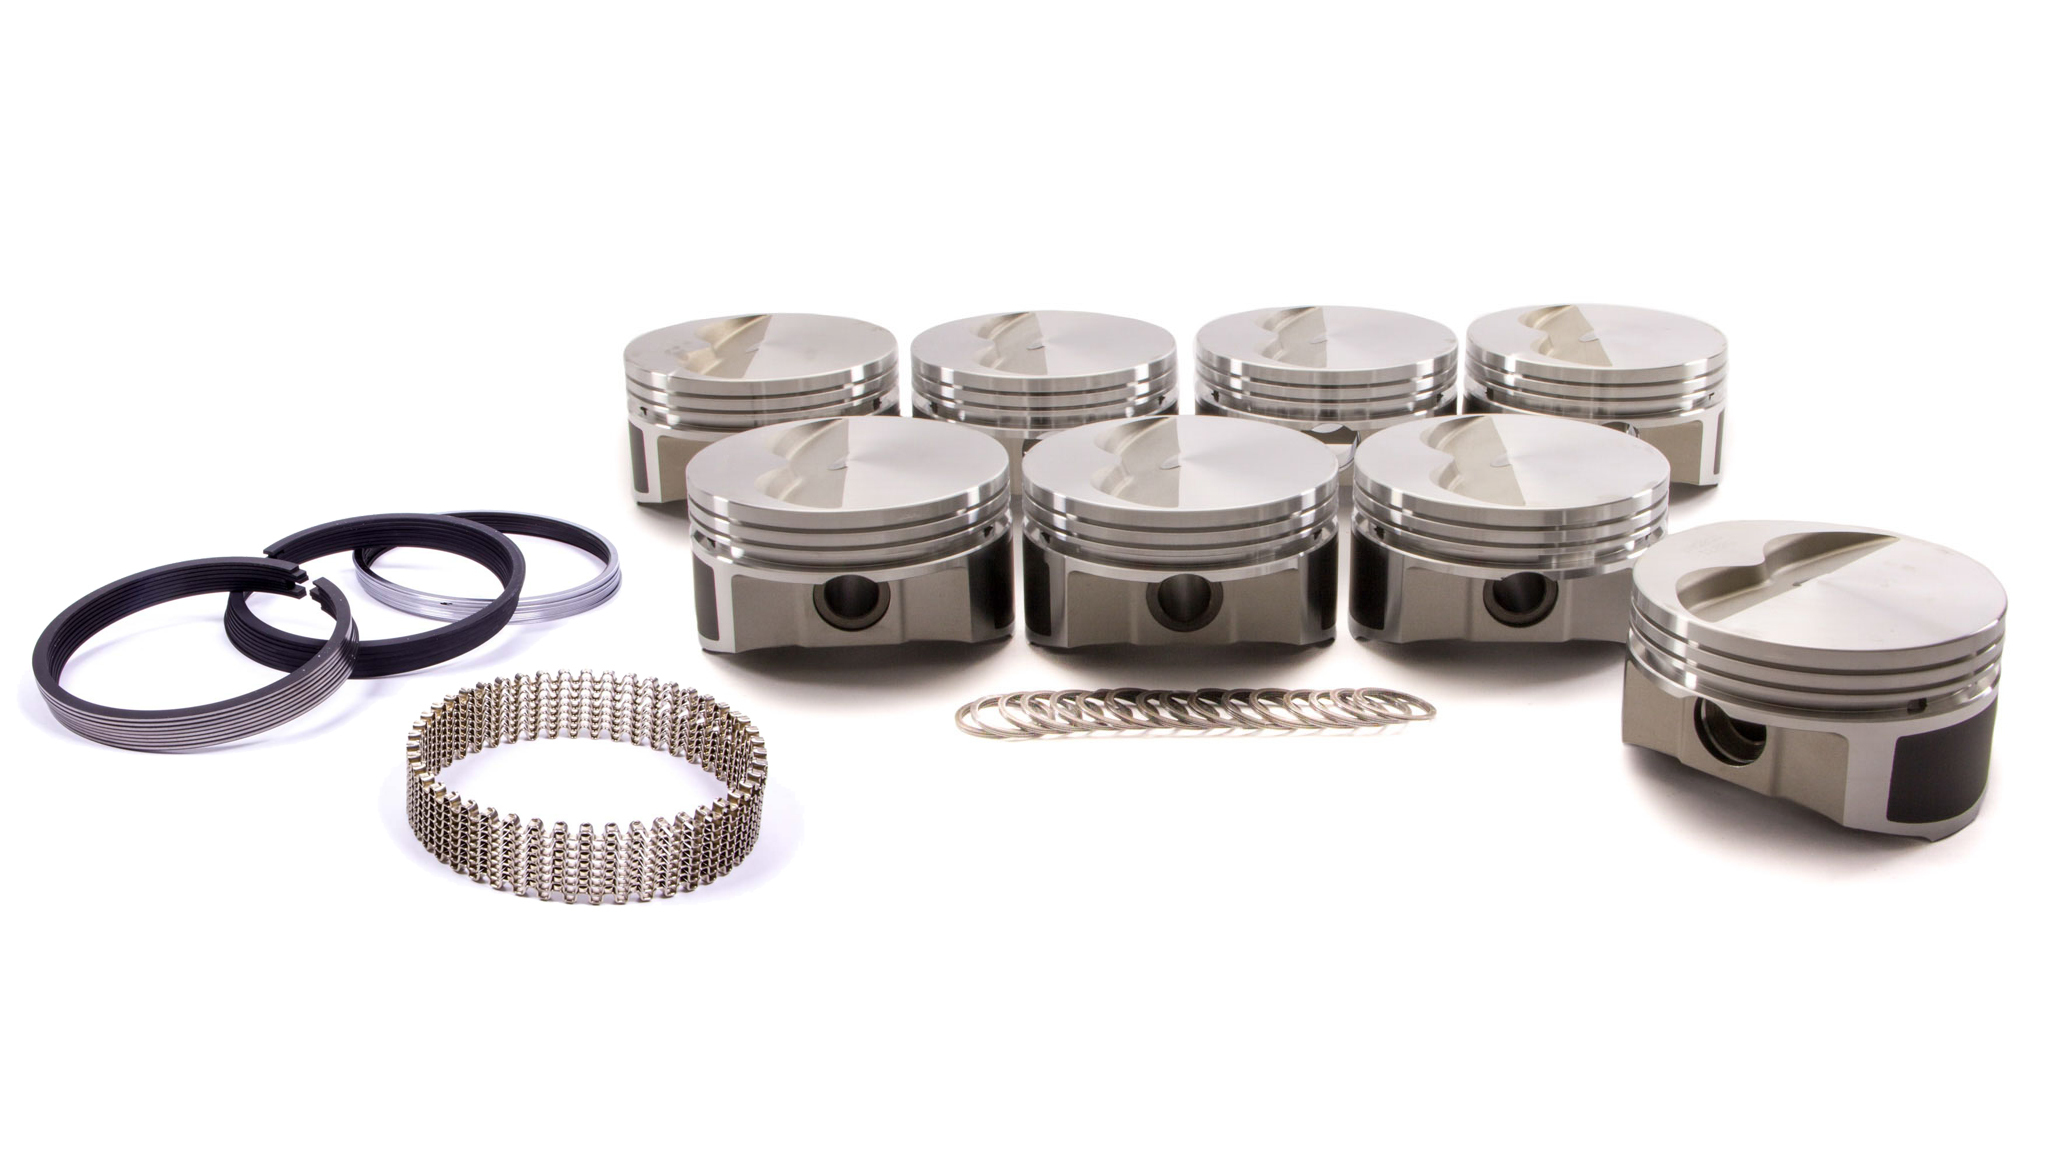 Wiseco Pro-Tru PTS505A3 Piston and Ring, 23 Degree Flat Top, Forged, 4.030 in Bore, 1/16 x 1/16 x 3/16 in Ring Grooves, Minus 5.0 cc, Small Block Chevy, Kit